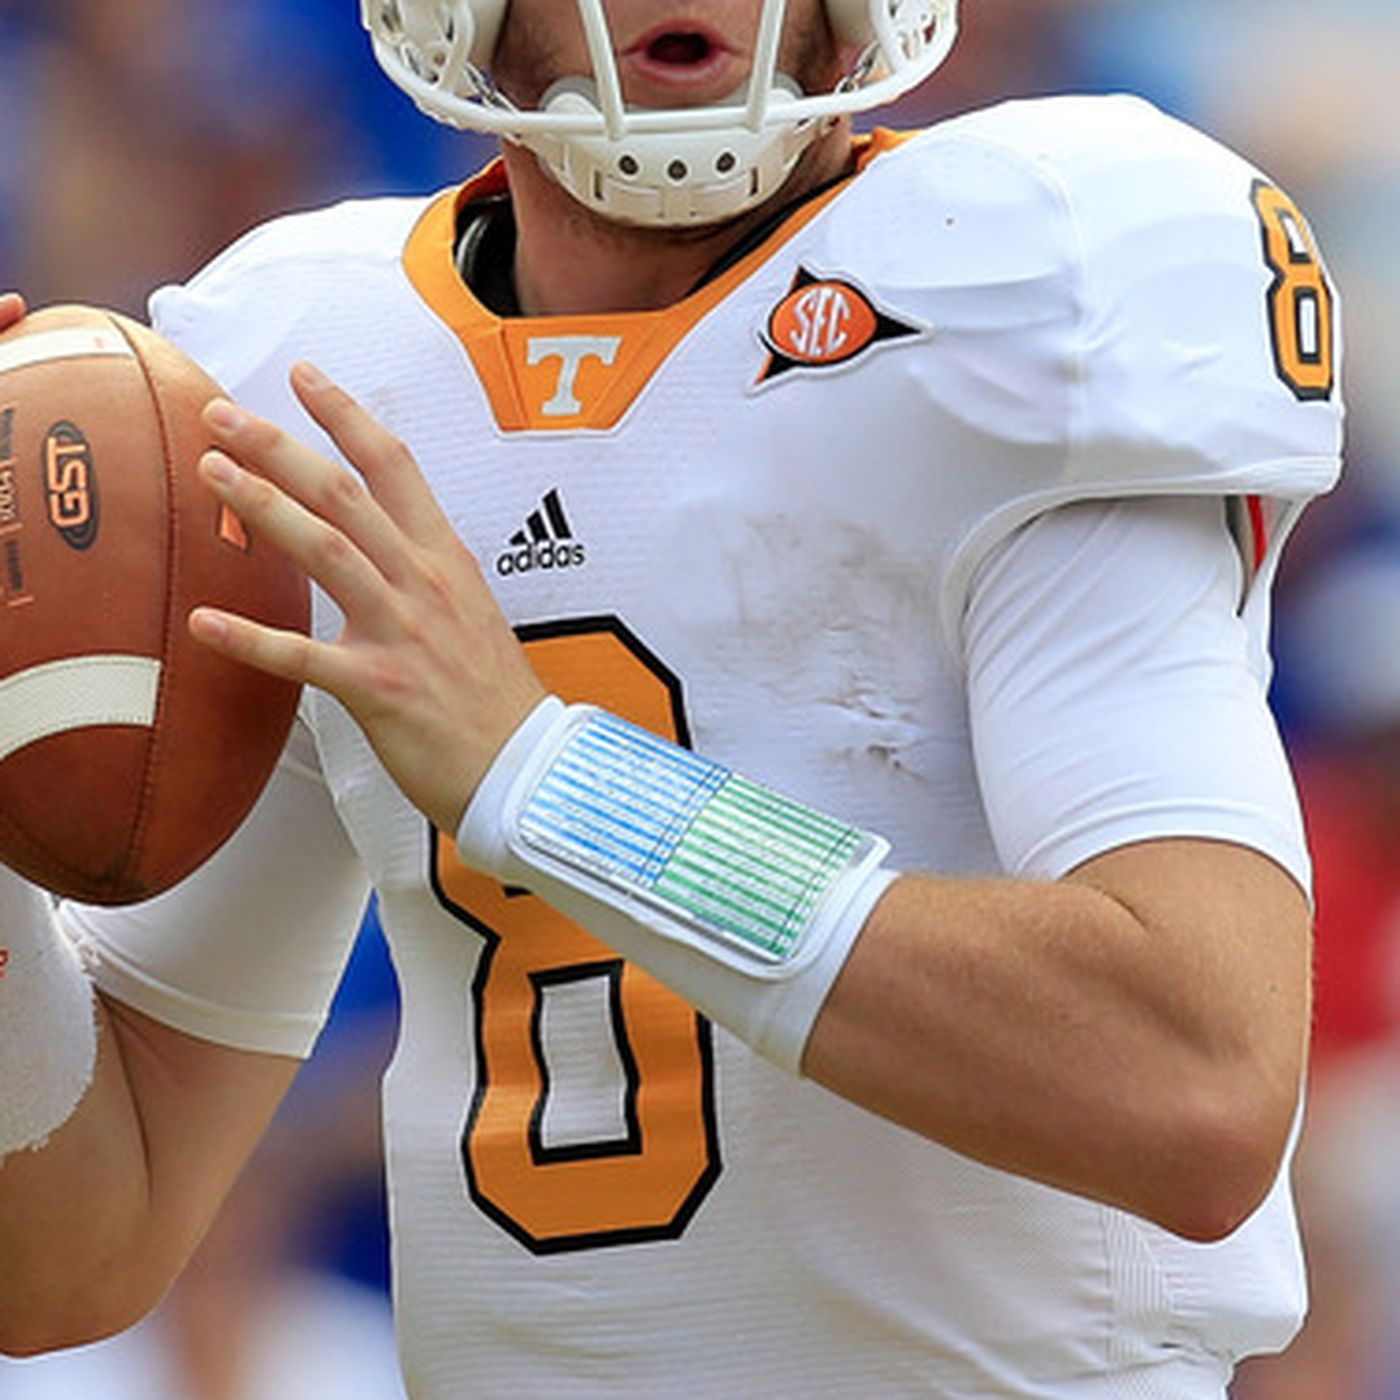 buy popular 79561 9a2b5 Tyler Bray Weight: Tennessee Quarterback puts on 20 pounds ...